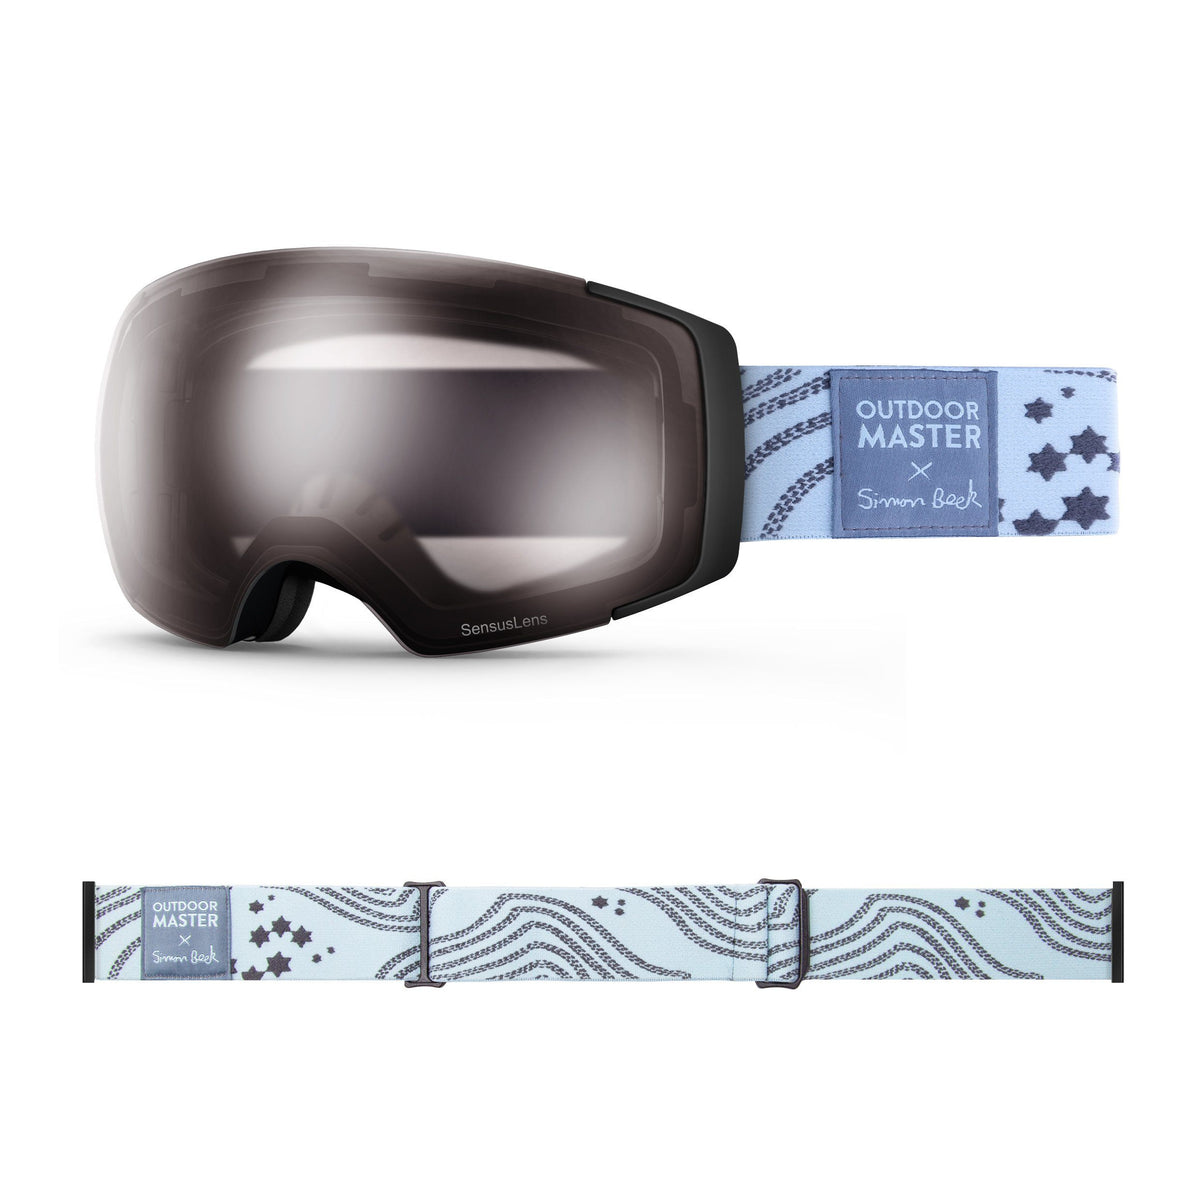 OutdoorMaster x Simon Beck Ski Goggles Pro Series - Snowshoeing Art Limited Edition OutdoorMaster SensusLens VLT40-80% Photochromatic Clear to Pink Star Road-Lightsteelblue